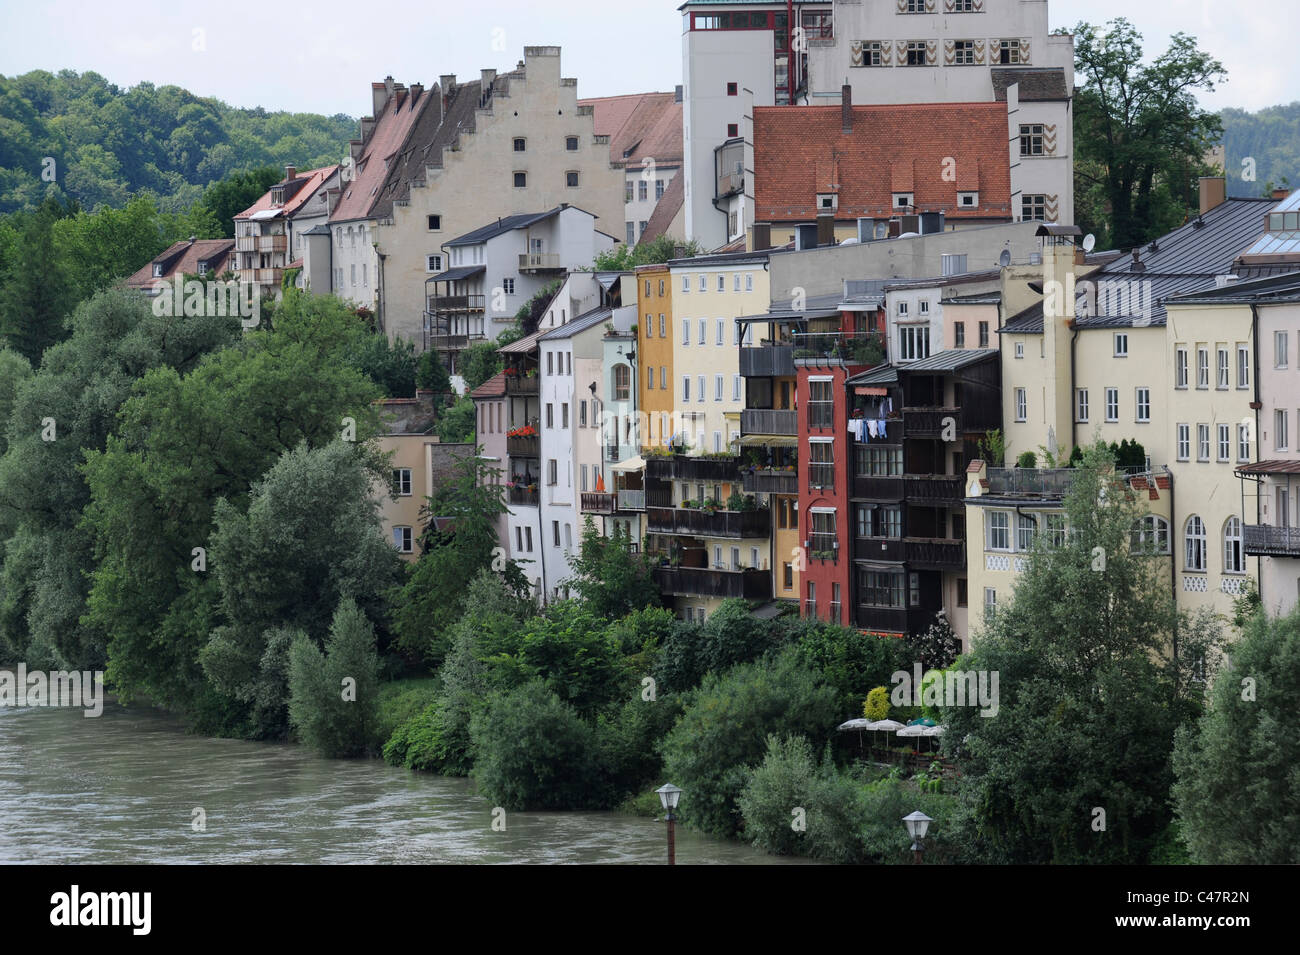 Wasserburg Am Inn Germania old town wasserburg am inn in bavaria, germany stock photo